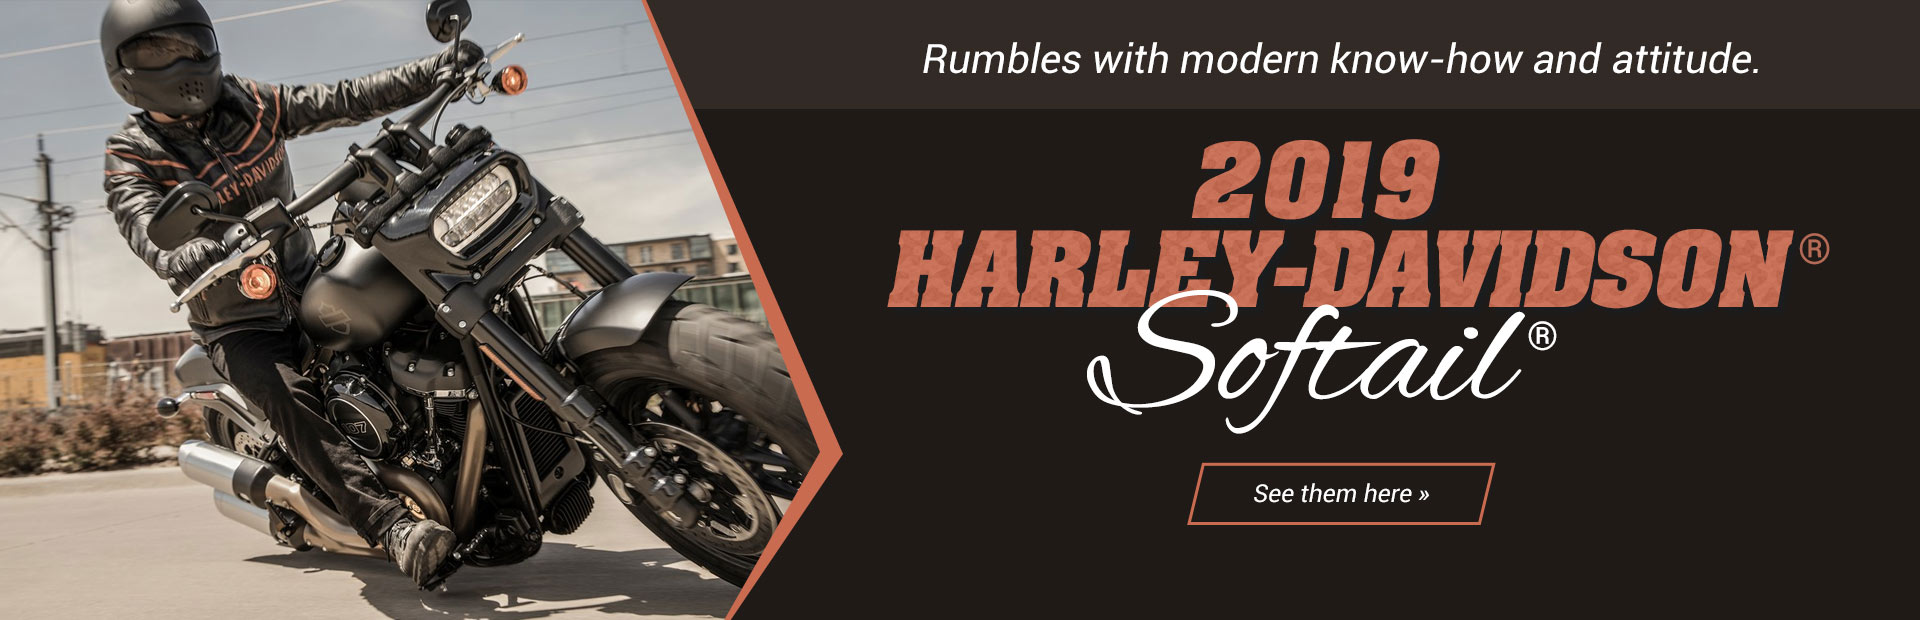 2019 Harley-Davidson® Softail®: Click here to view the models.